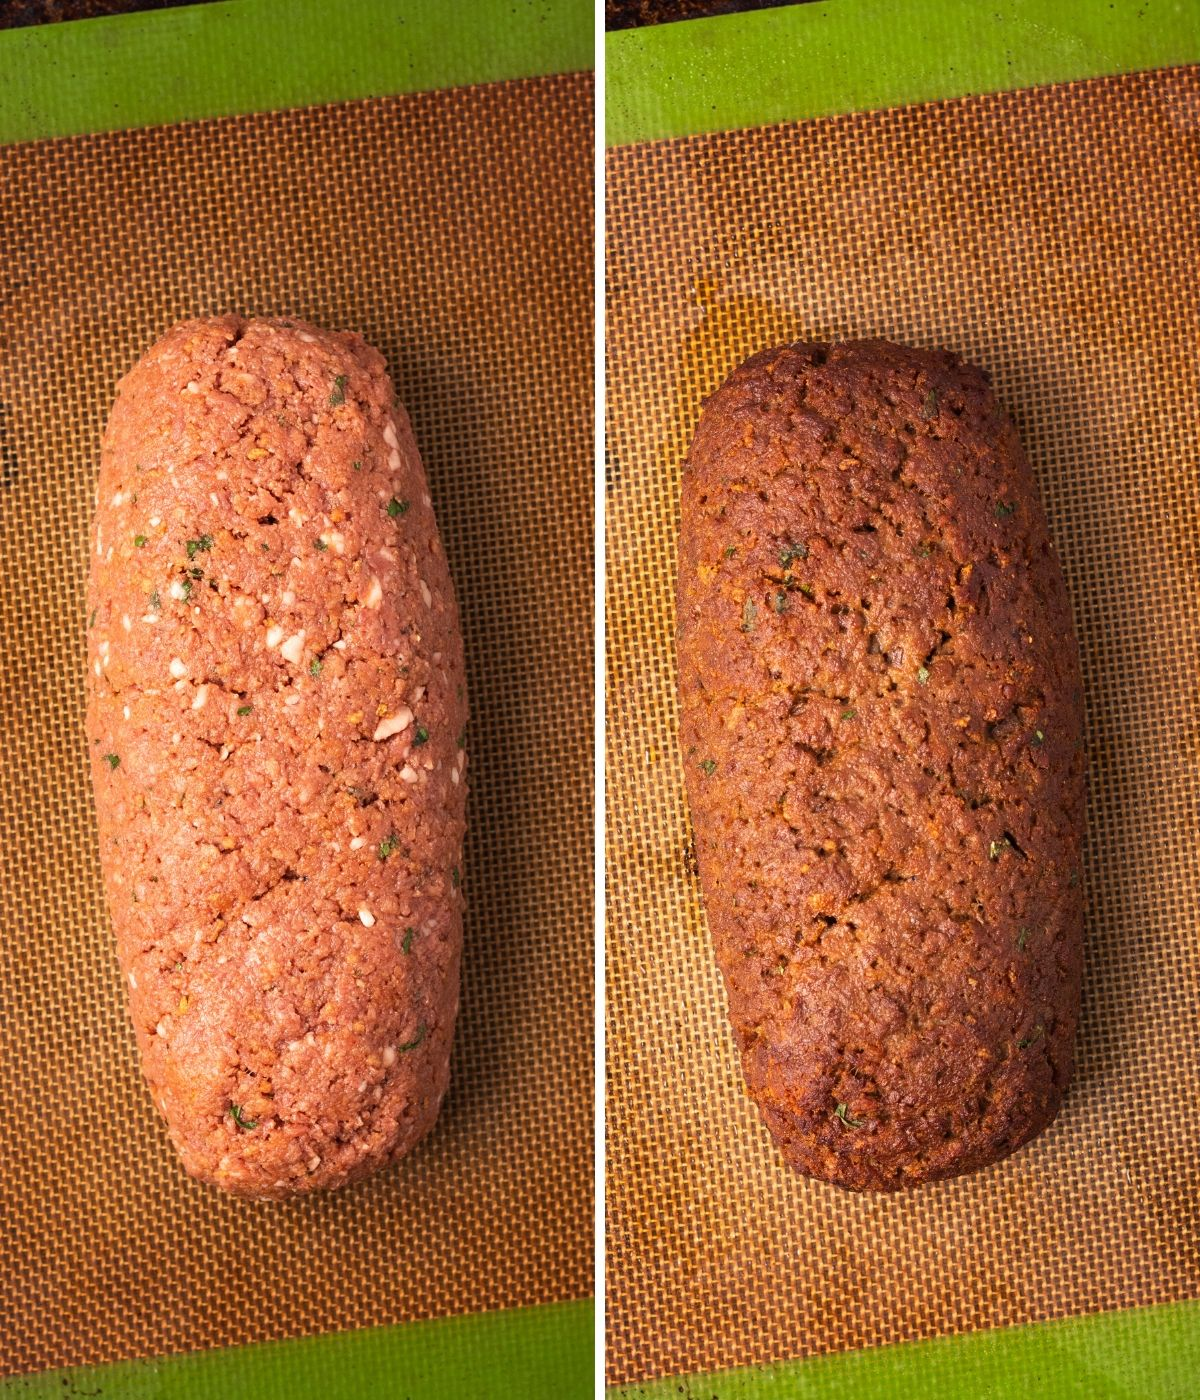 A collage of two images, side by side. The first is of raw meatloaf on a baking sheet. The second is the baked meatloaf.